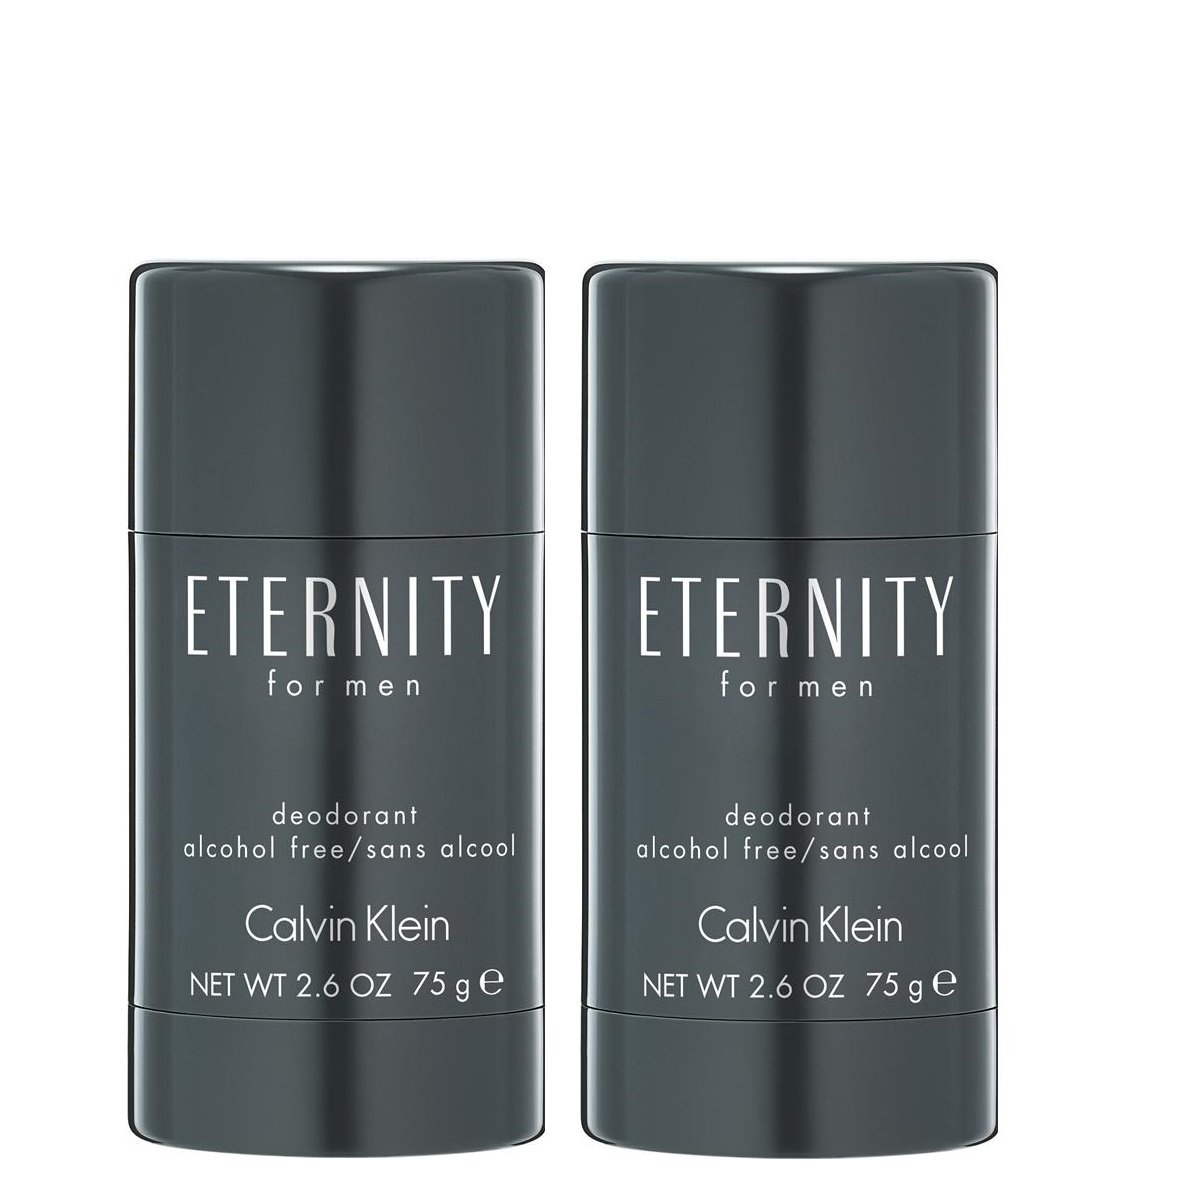 Calvin Klein - 2x Eternity Deodorant Stick for Men